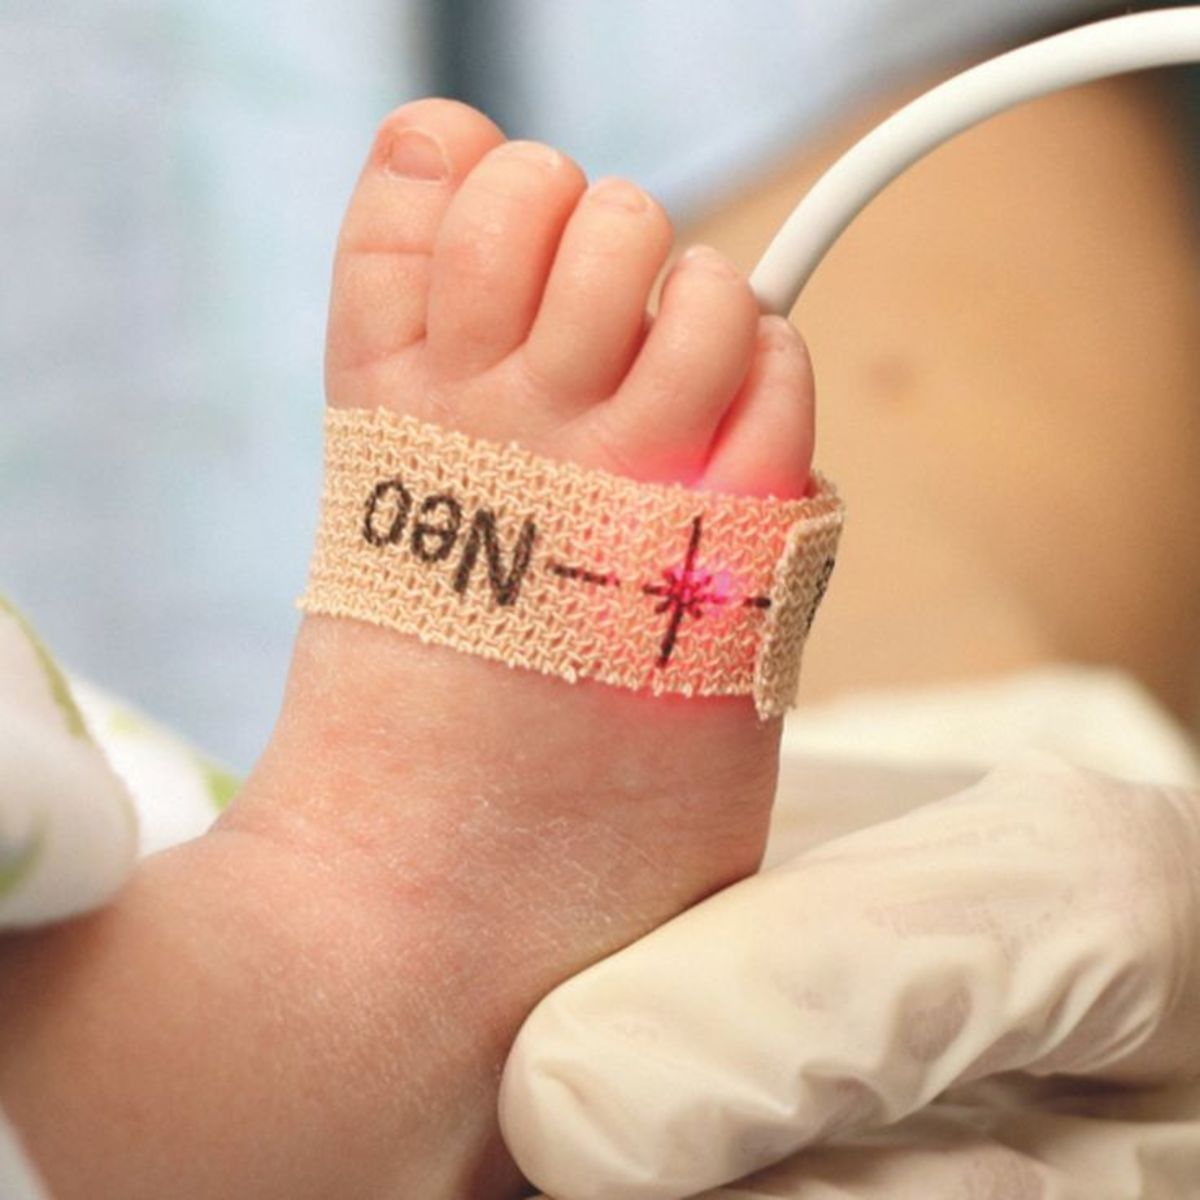 Blood Oxygenation in Newborns: More Complicated Than You Think